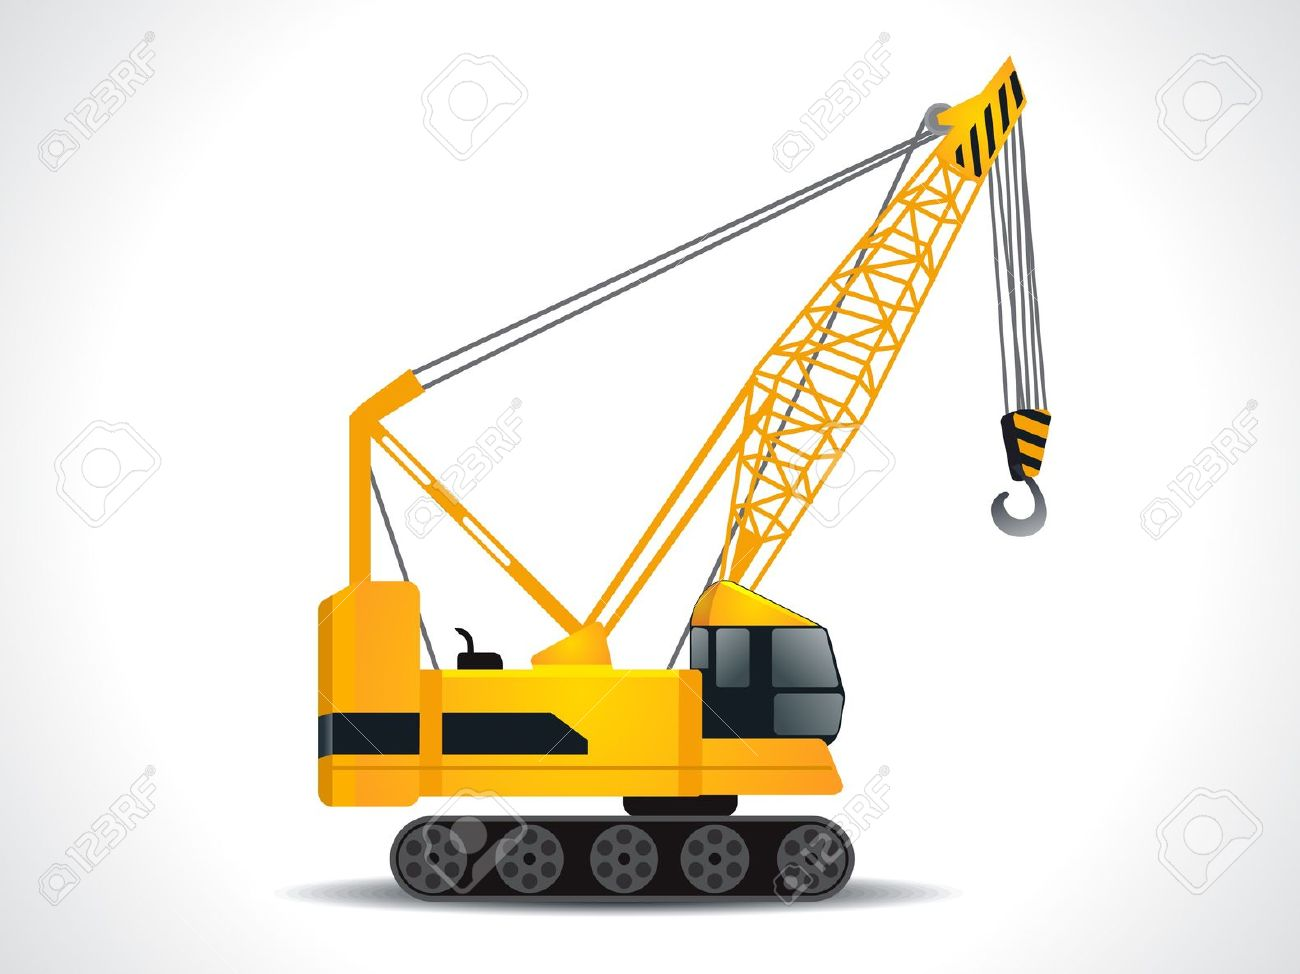 Detailed Crane Vector Illustration Royalty Free Cliparts, Vectors.